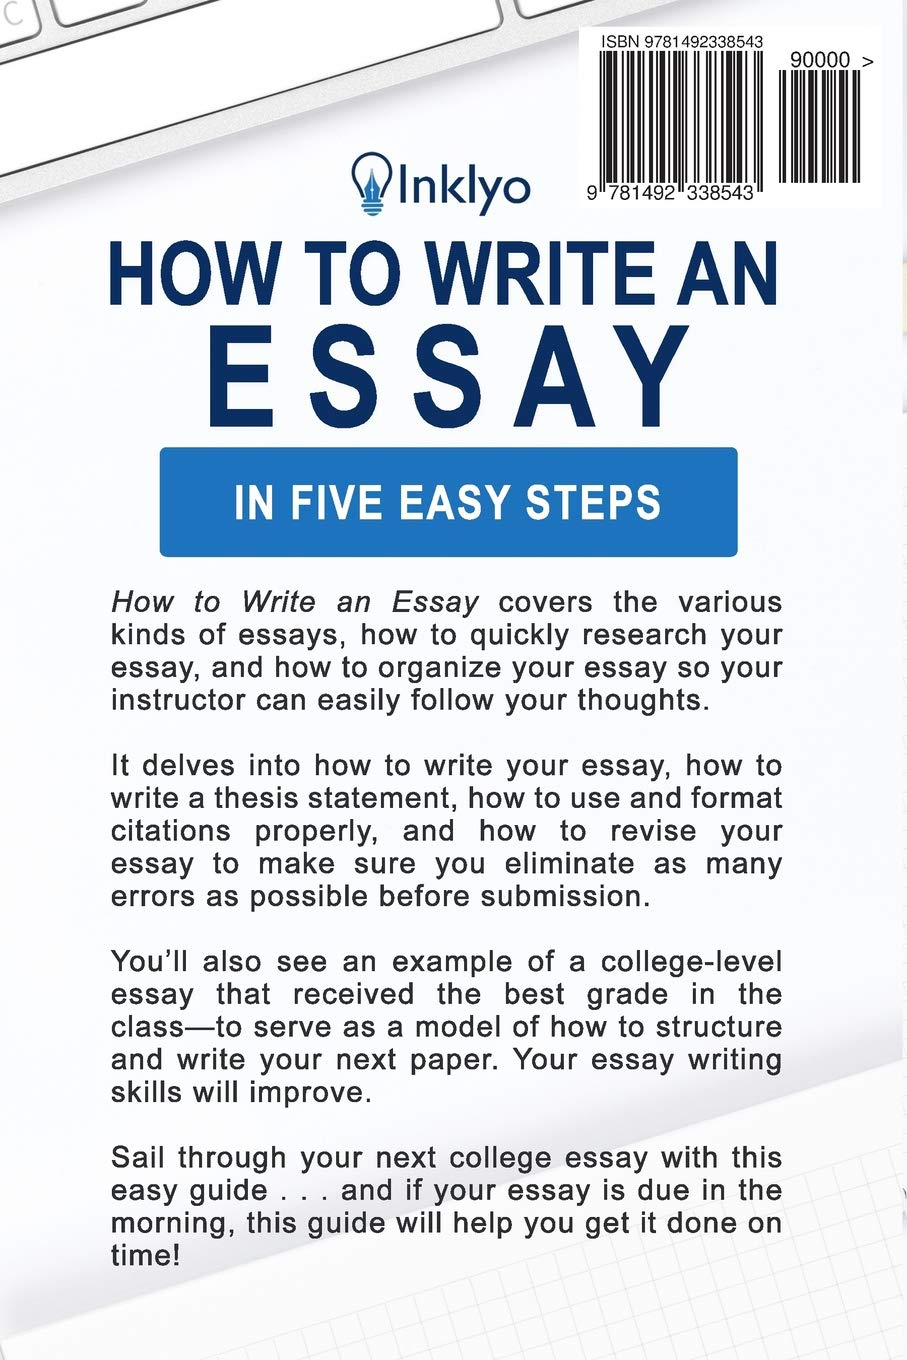 006 71v7ckw5pll How To Write An Essay Quickly Unbelievable Academic English Fast A Paper Full